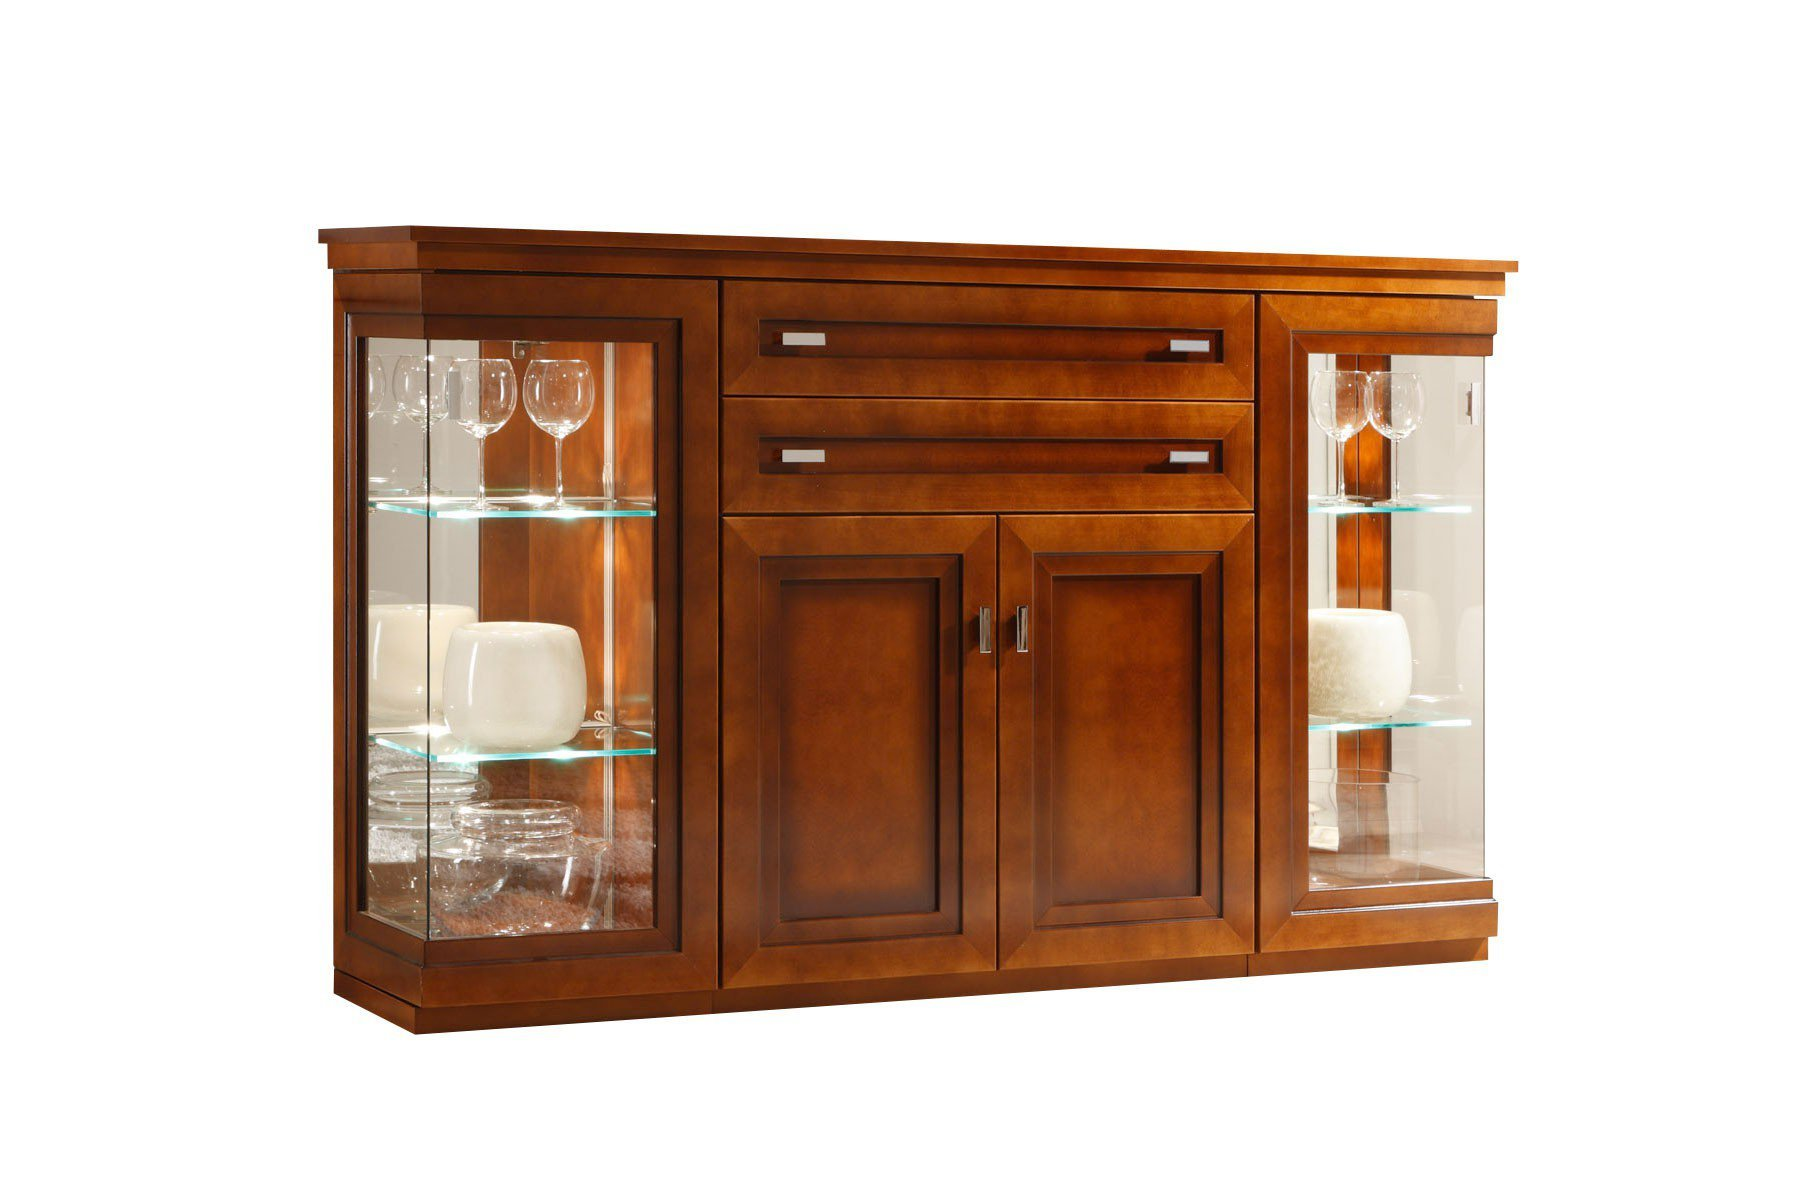 wehrsdorfer sideboard kent ke65 cognac antik m bel letz ihr online shop. Black Bedroom Furniture Sets. Home Design Ideas